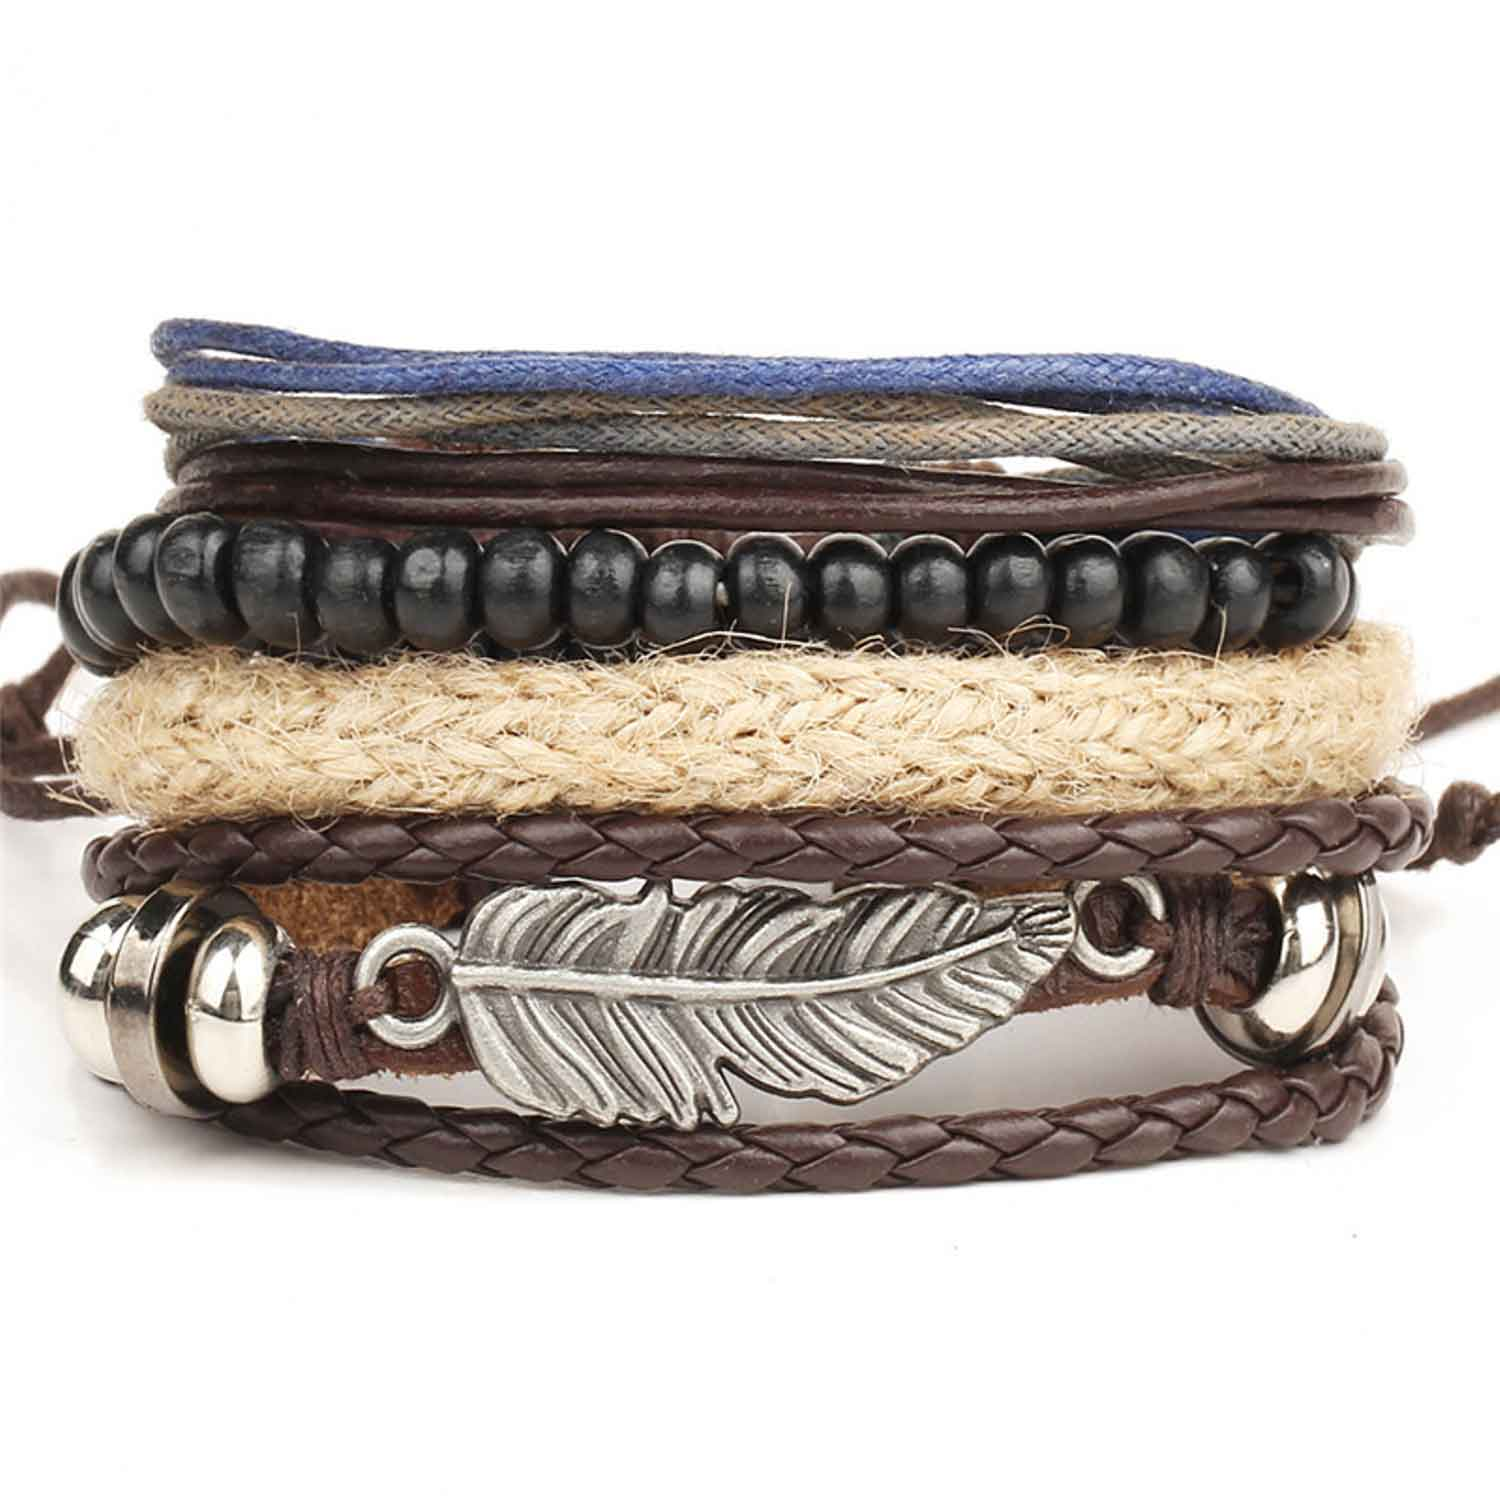 Beaded Feather Leather Multilayered Bracelet - GearBody